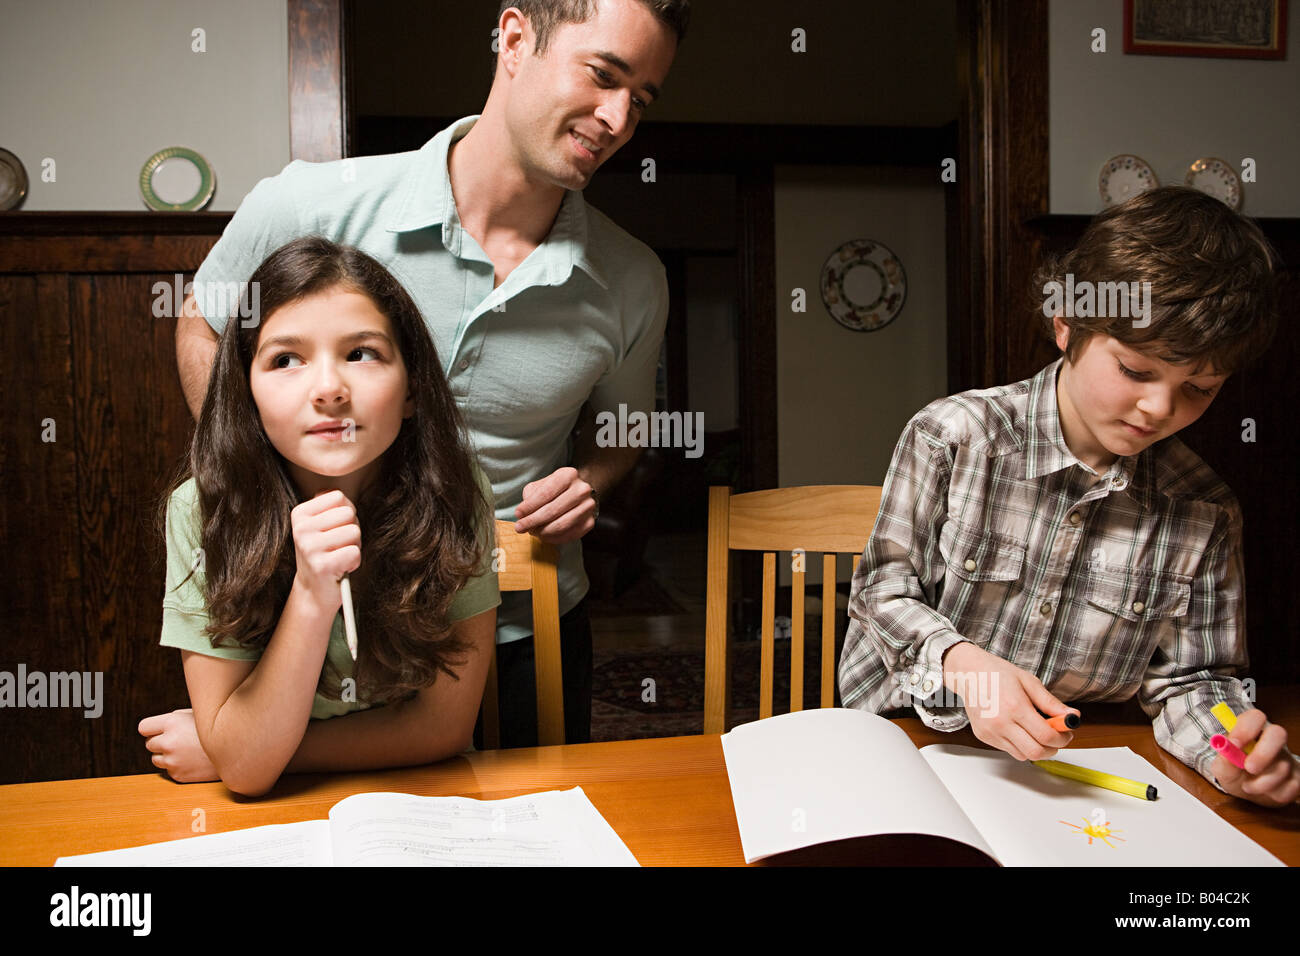 A father supervising his childrens homework Stock Photo